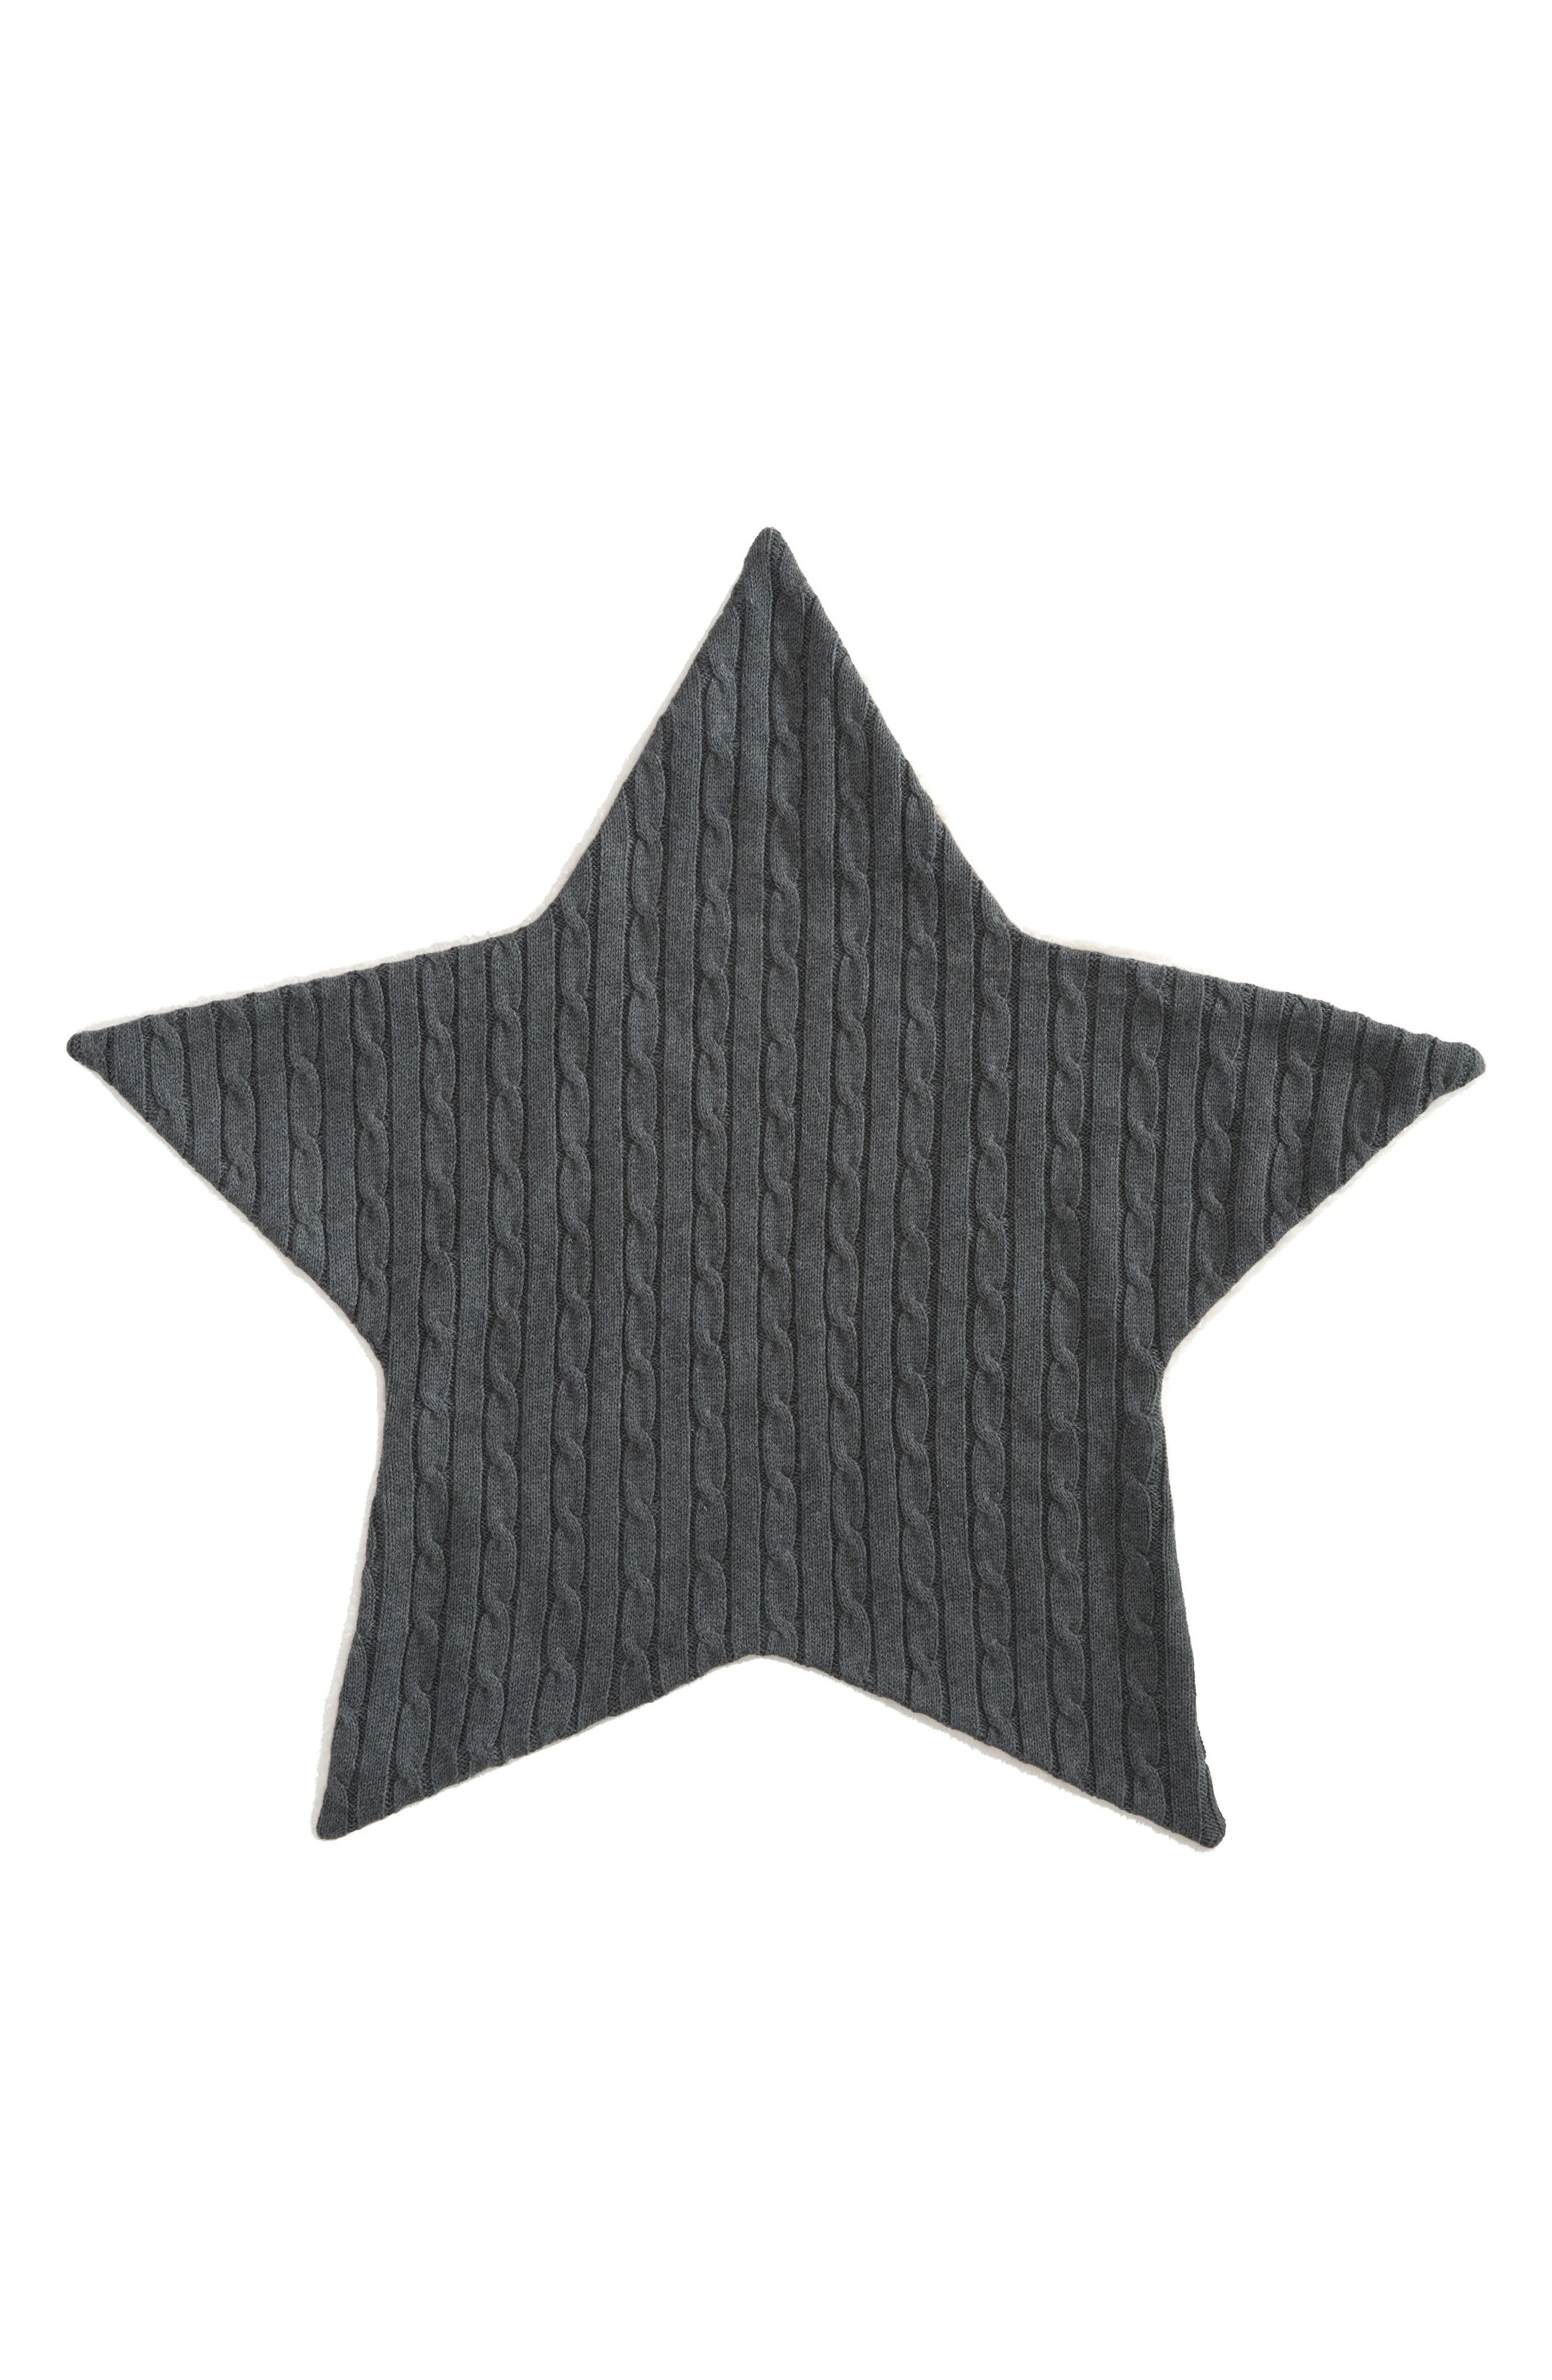 Cable Knit Star Blanket,                         Main,                         color, 020